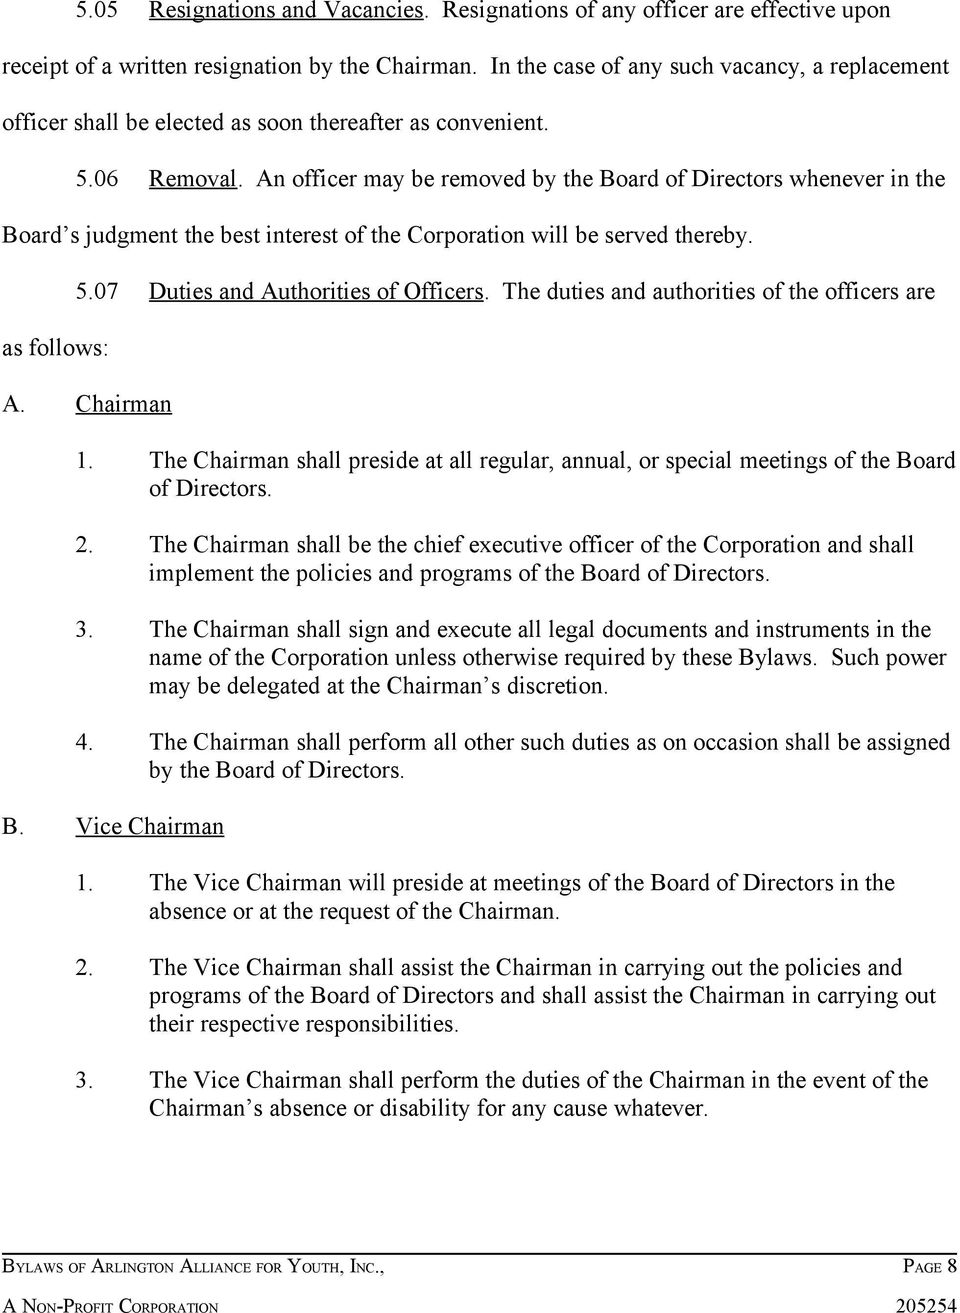 An officer may be removed by the Board of Directors whenever in the Board s judgment the best interest of the Corporation will be served thereby. as follows: 5.07 Duties and Authorities of Officers.